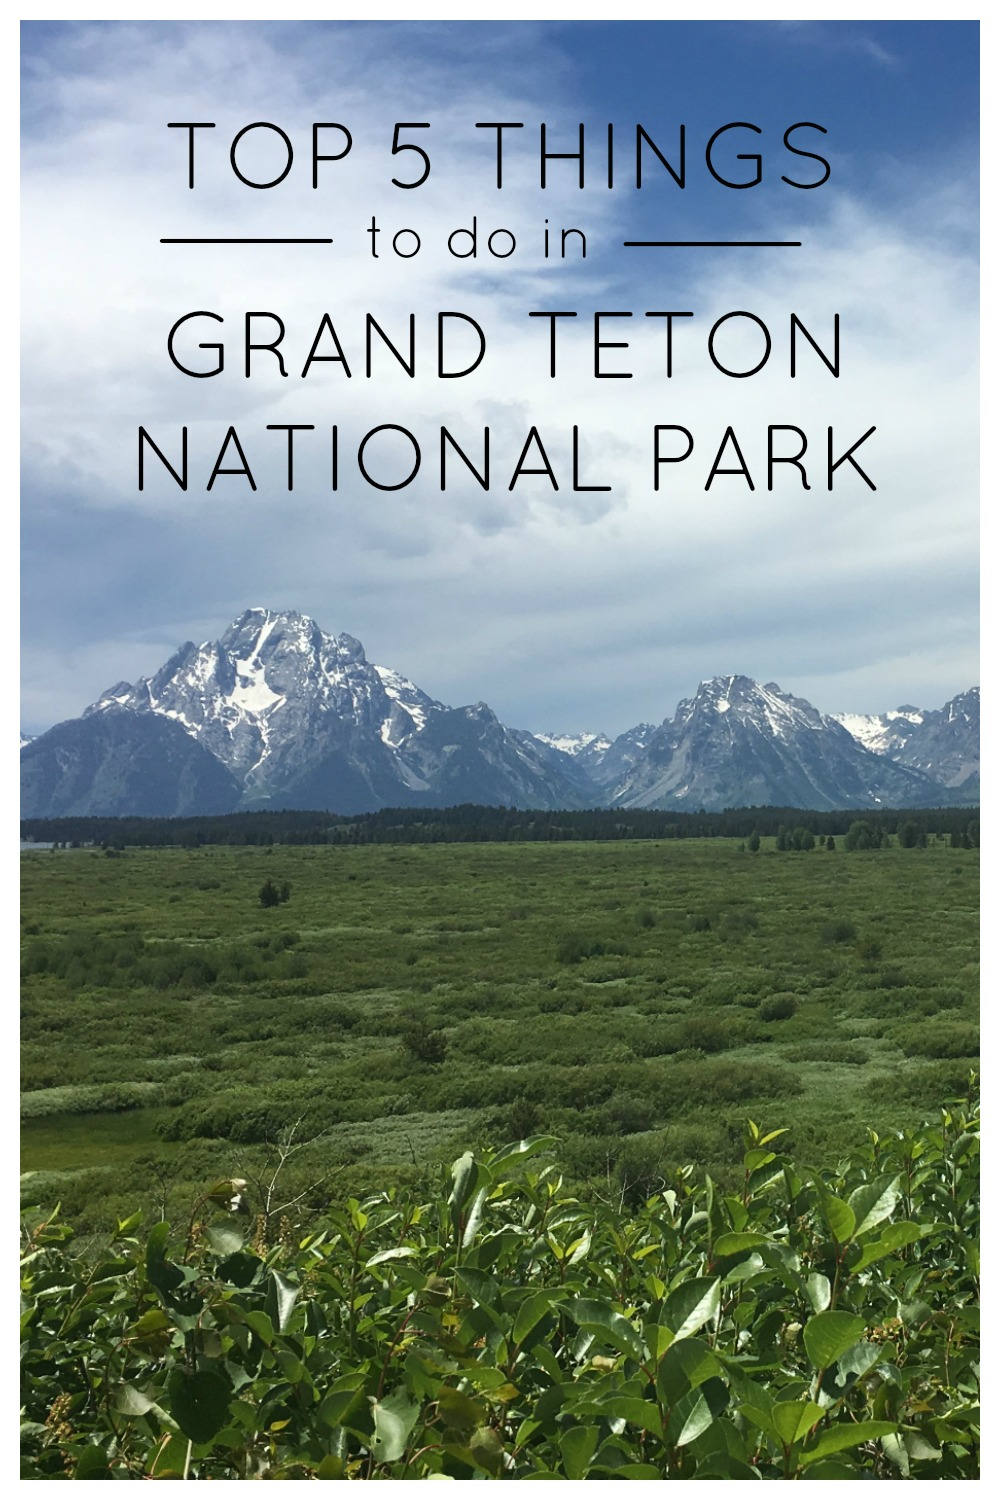 5 things to do in Grand Teton National Park